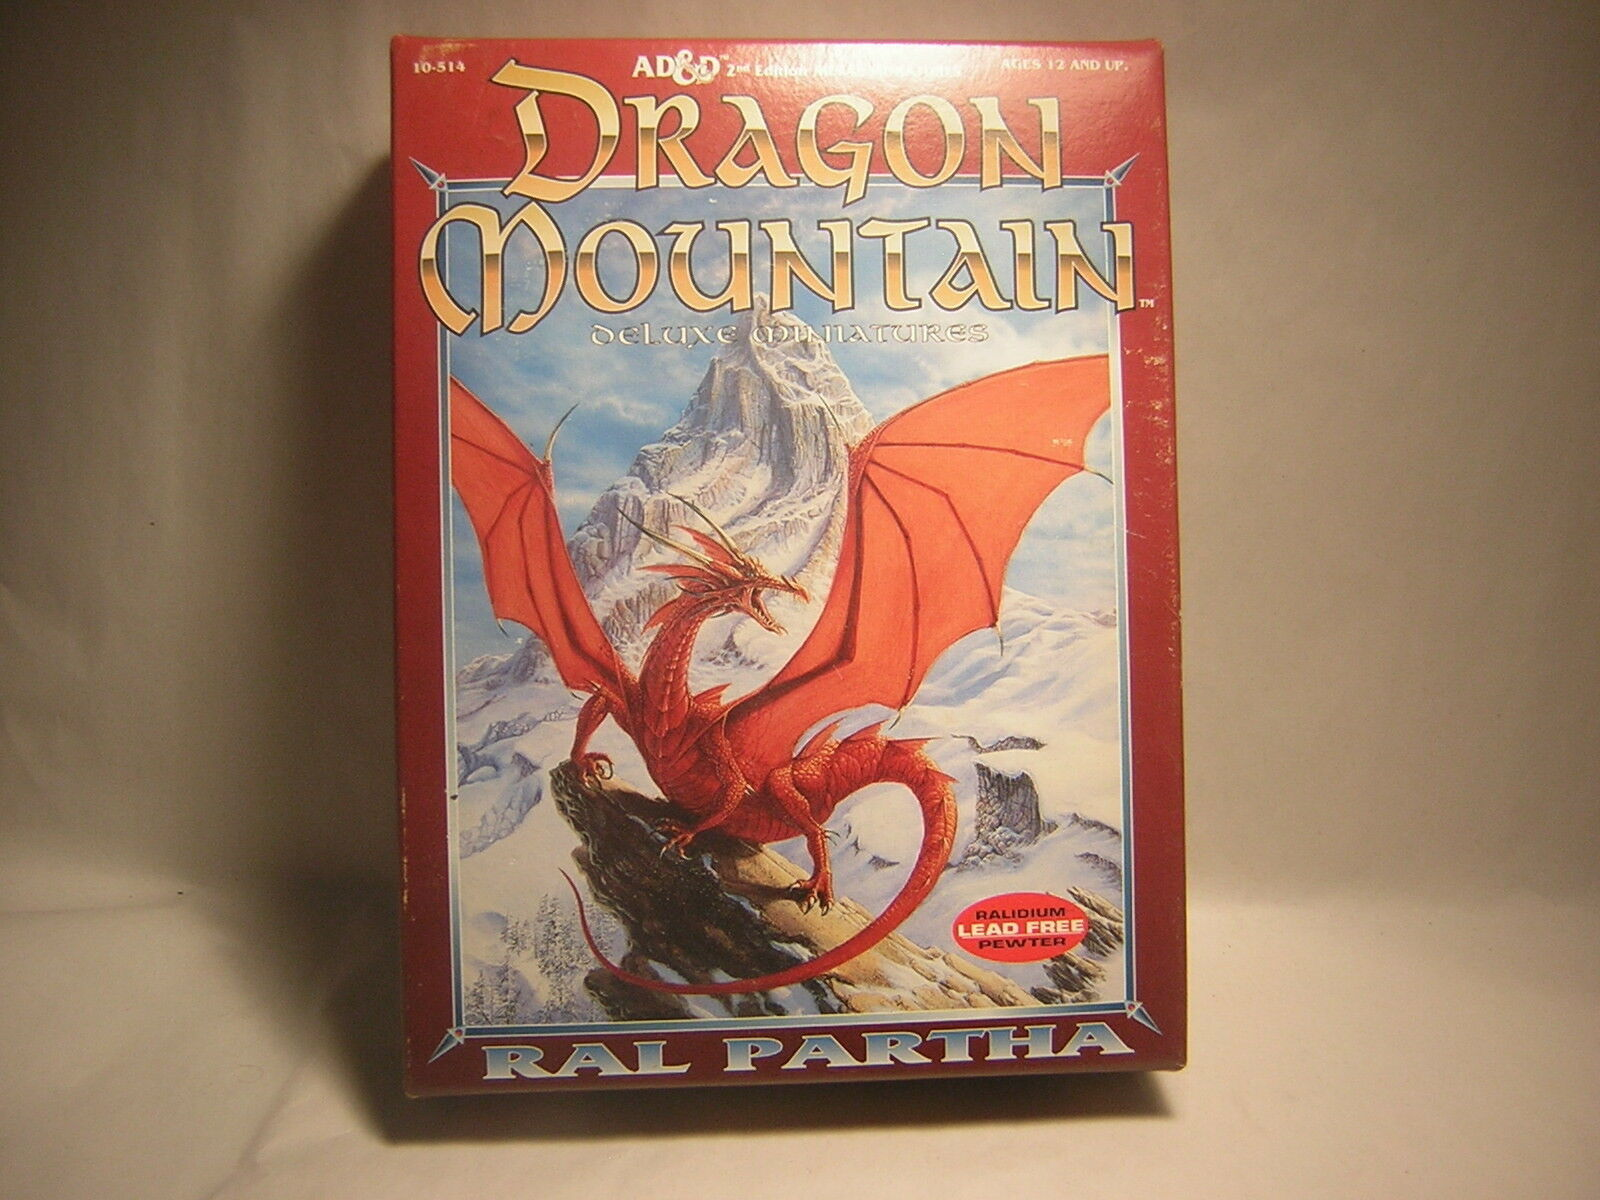 AD&D Dungeons & Dragons   DRAGON MOUNTAIN  Ral Partha 1993  genre Warhammer  bonne qualité